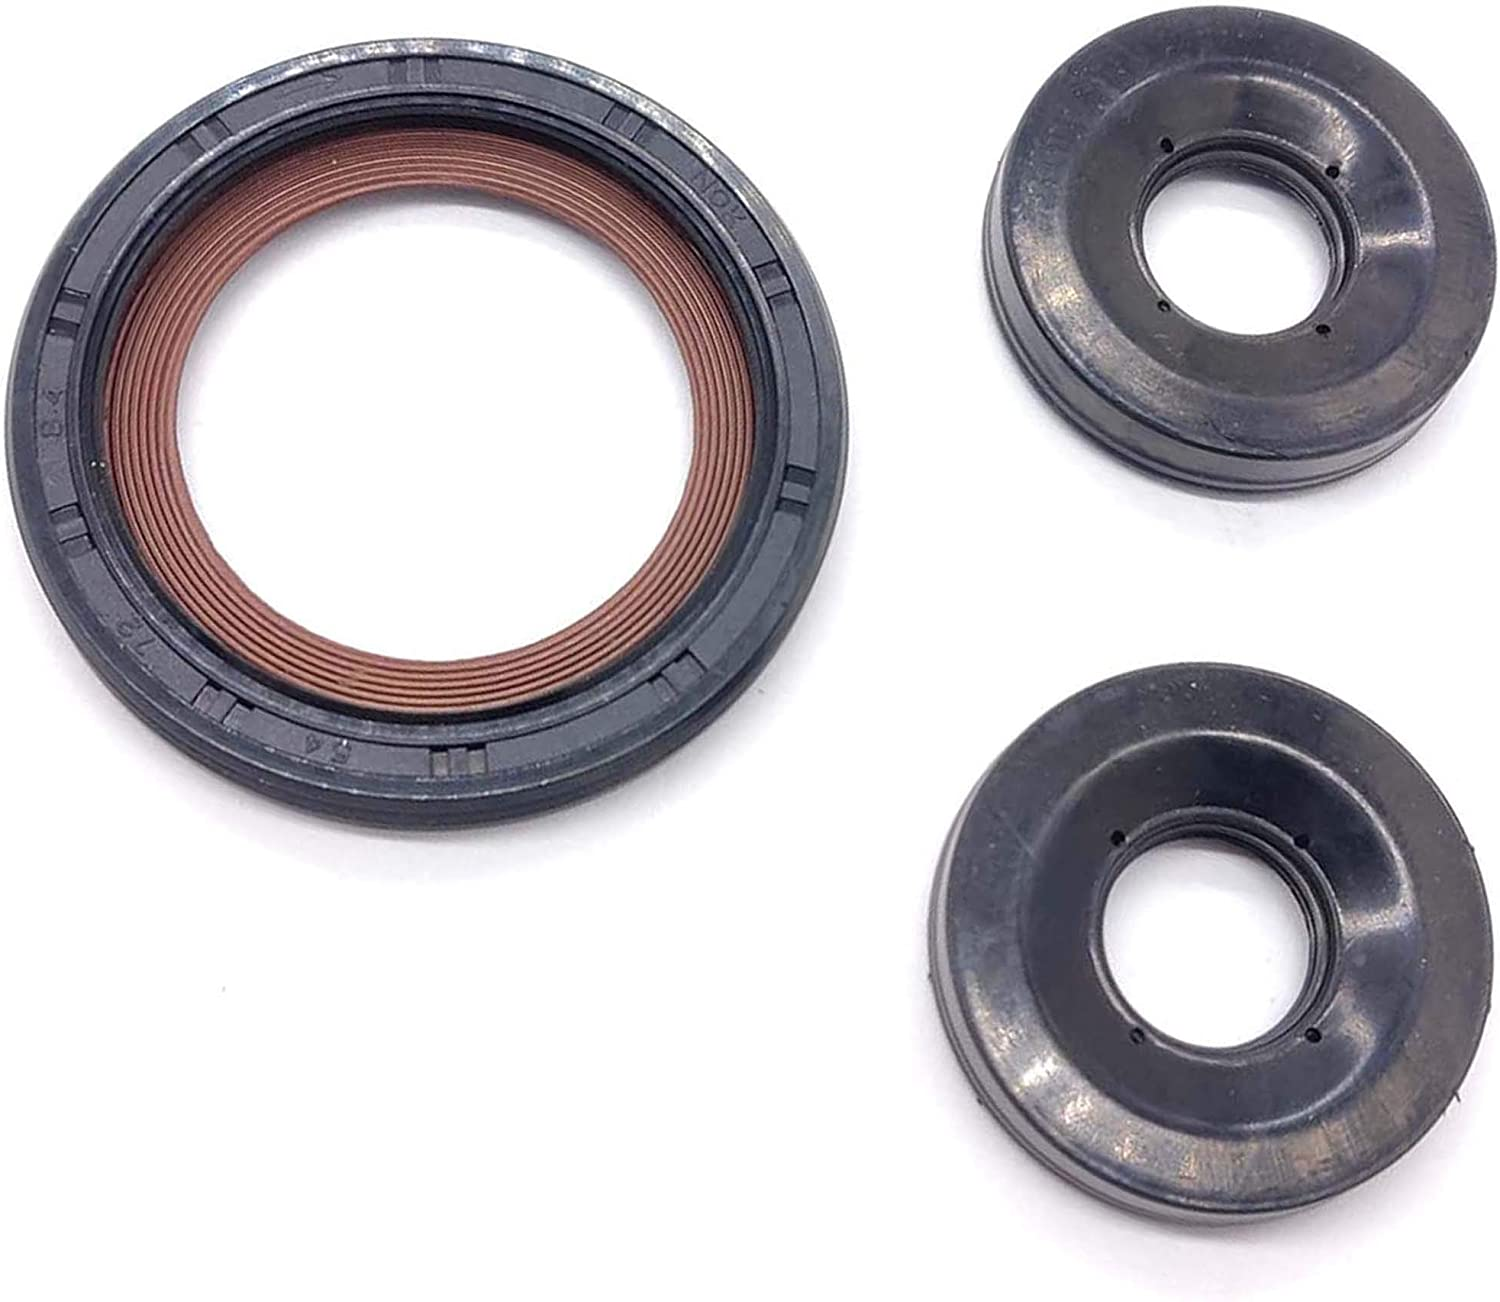 Replacement Parts OKAY MOTOR Head Gaskets Set for GM LS1 LS6 LQ4 ...